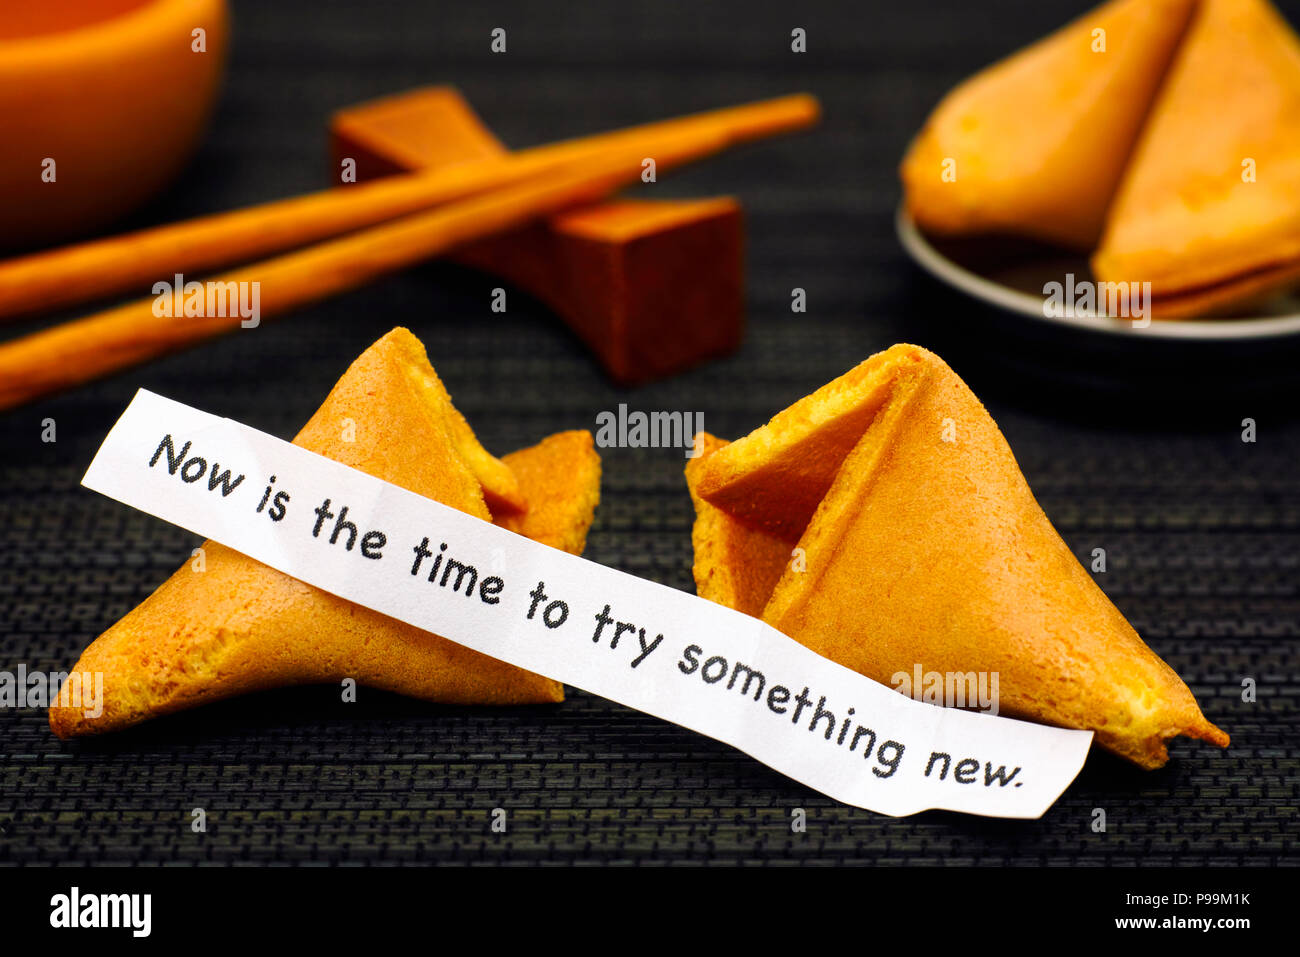 Paper strip with phrase Now is the Time to Try Something New from fortune cookie, another cookie and chopsticks on black napkin background. - Stock Image